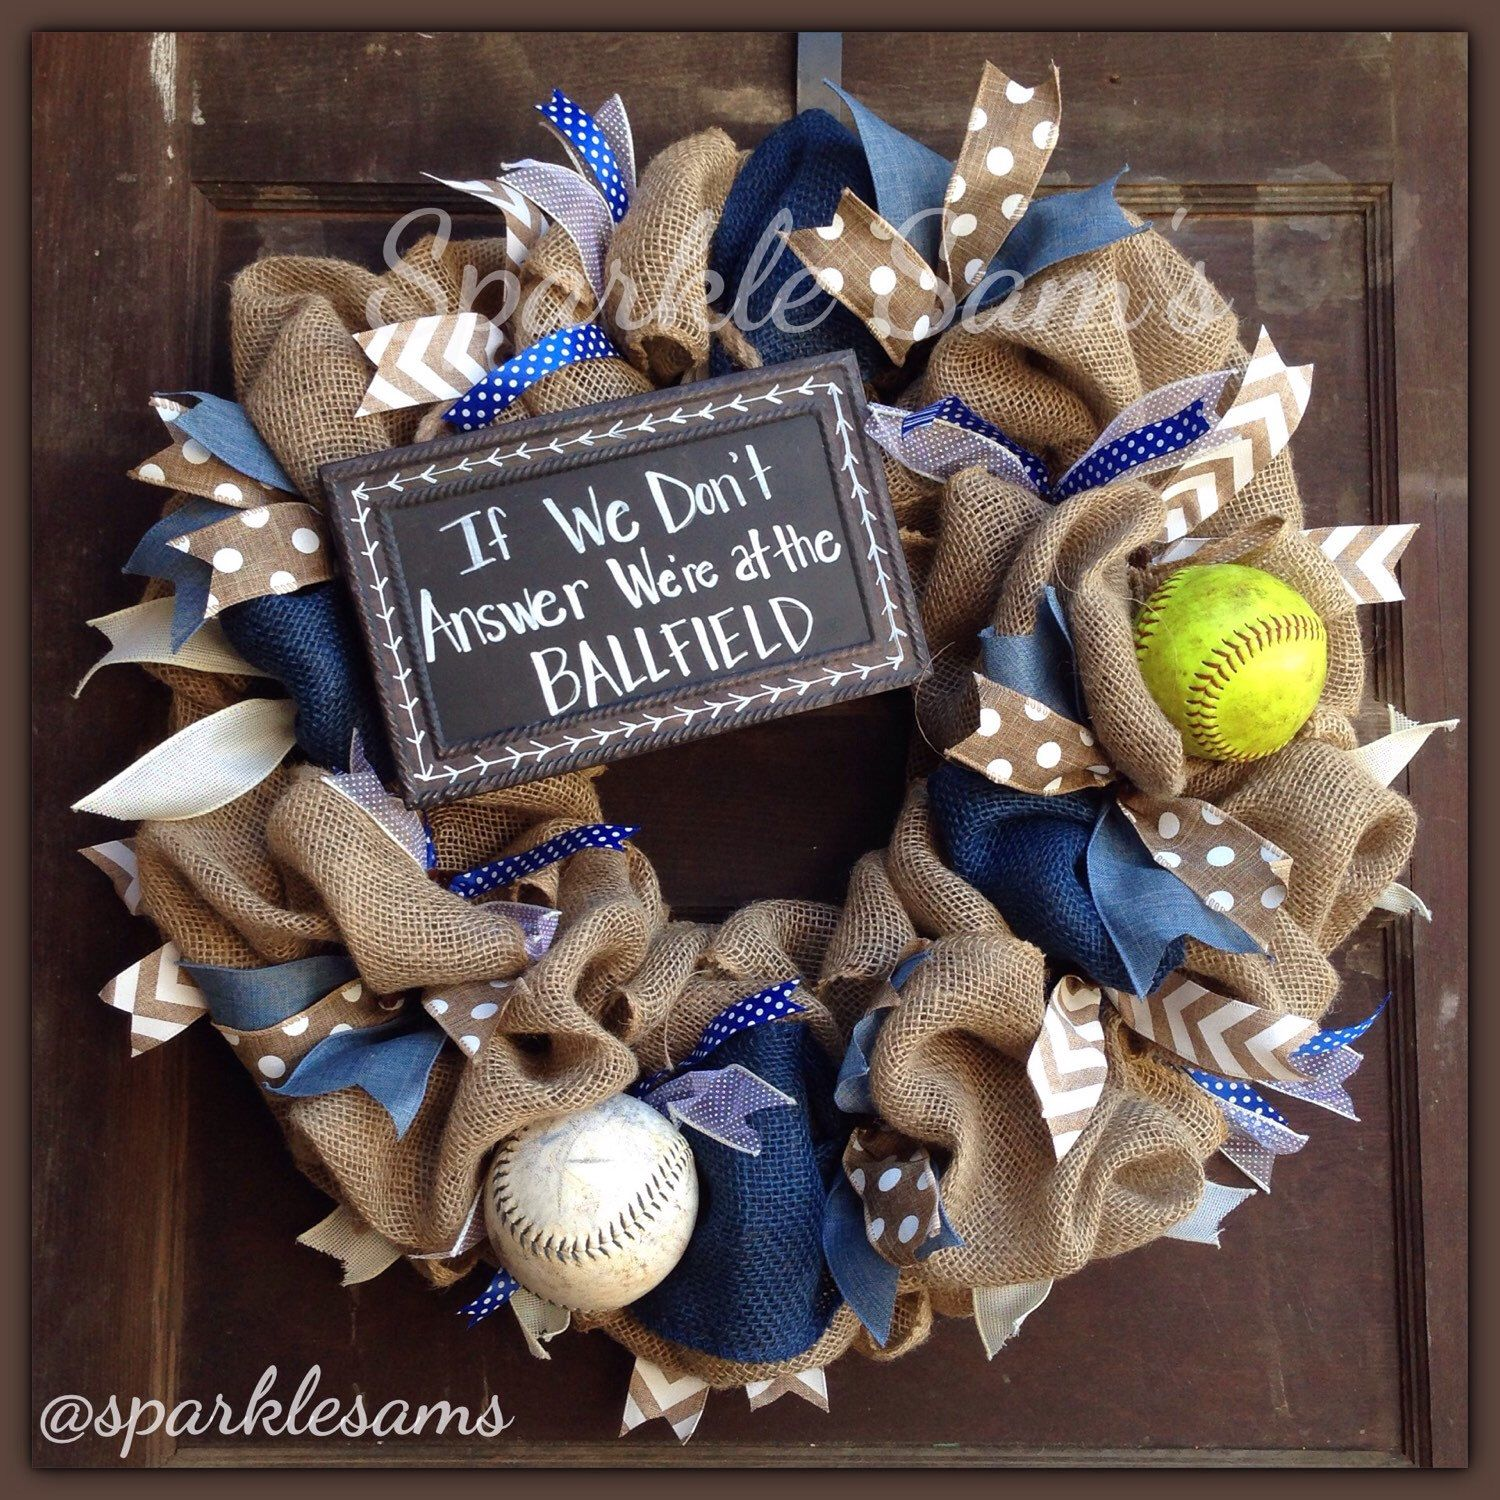 We're At the Ballfield Wreath by Sparklesamswreaths on Etsy https://www.etsy.com/listing/266881721/were-at-the-ballfield-wreath